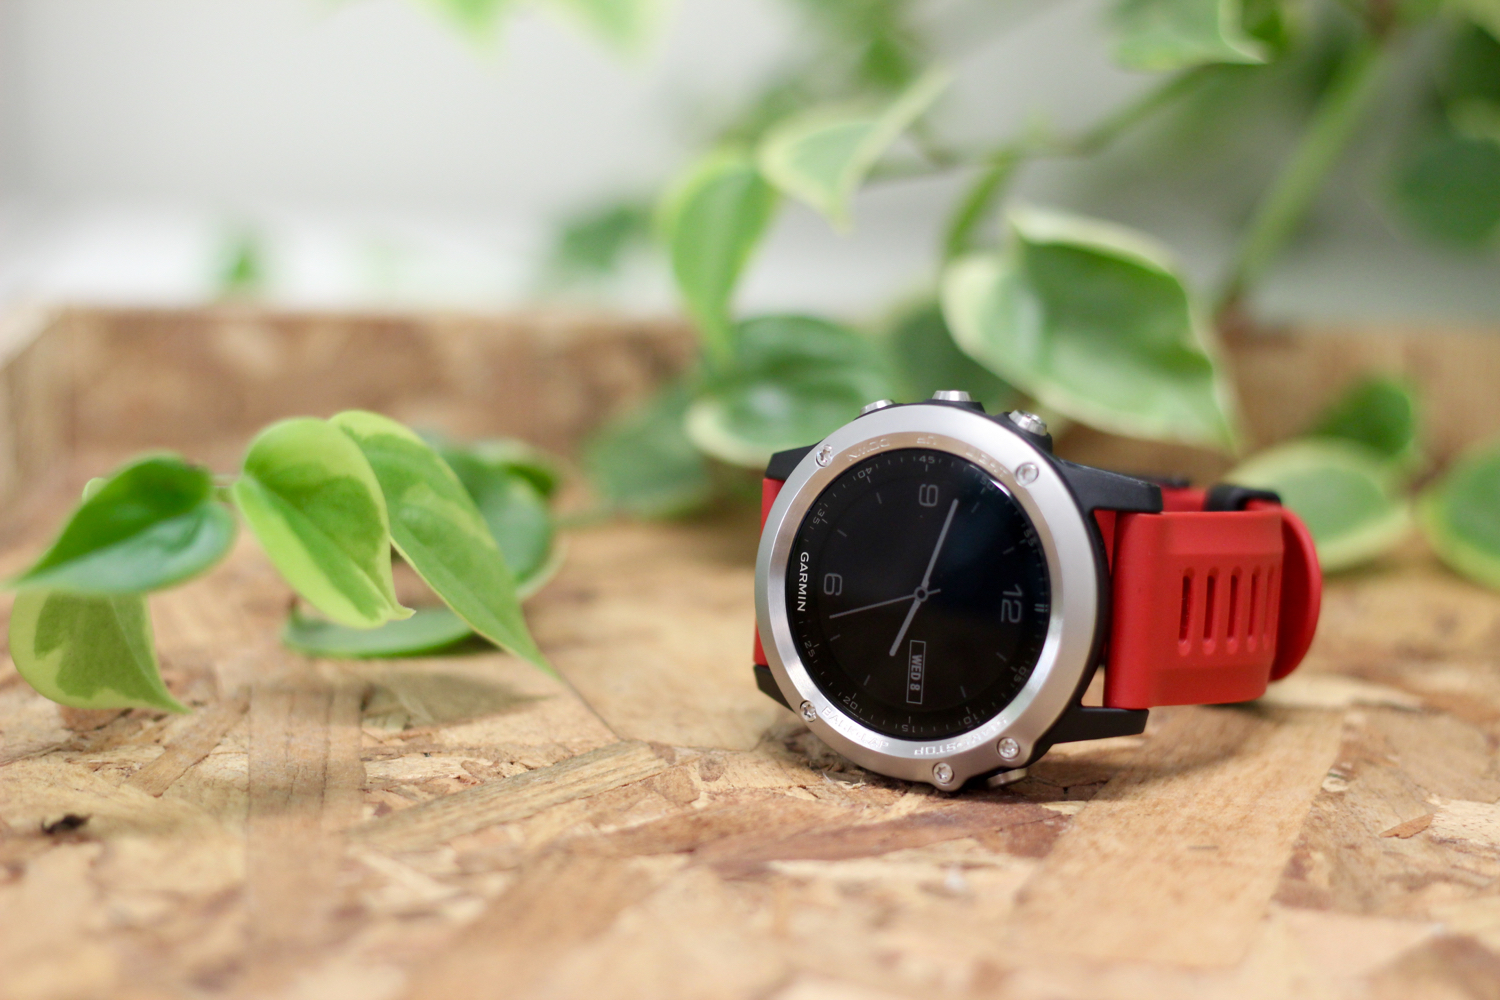 Fēnix watch